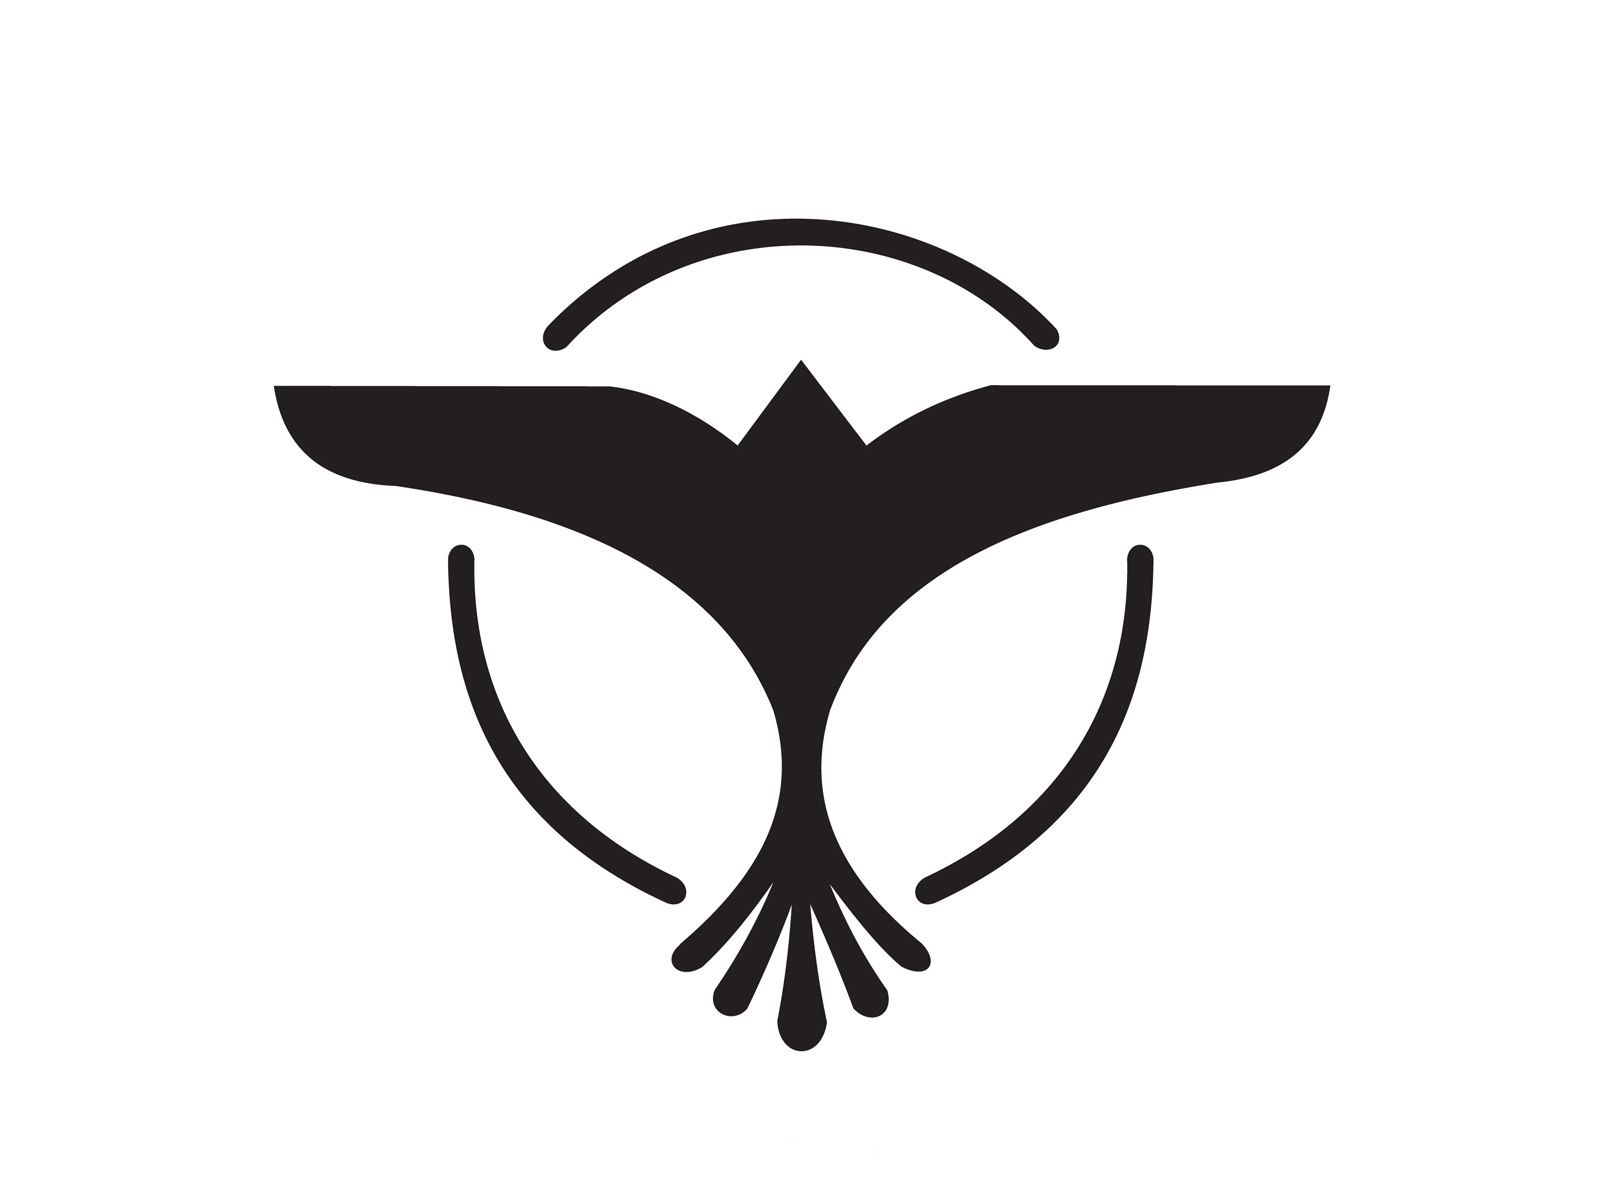 The famous bird logo. Any Tiësto fan will be able to